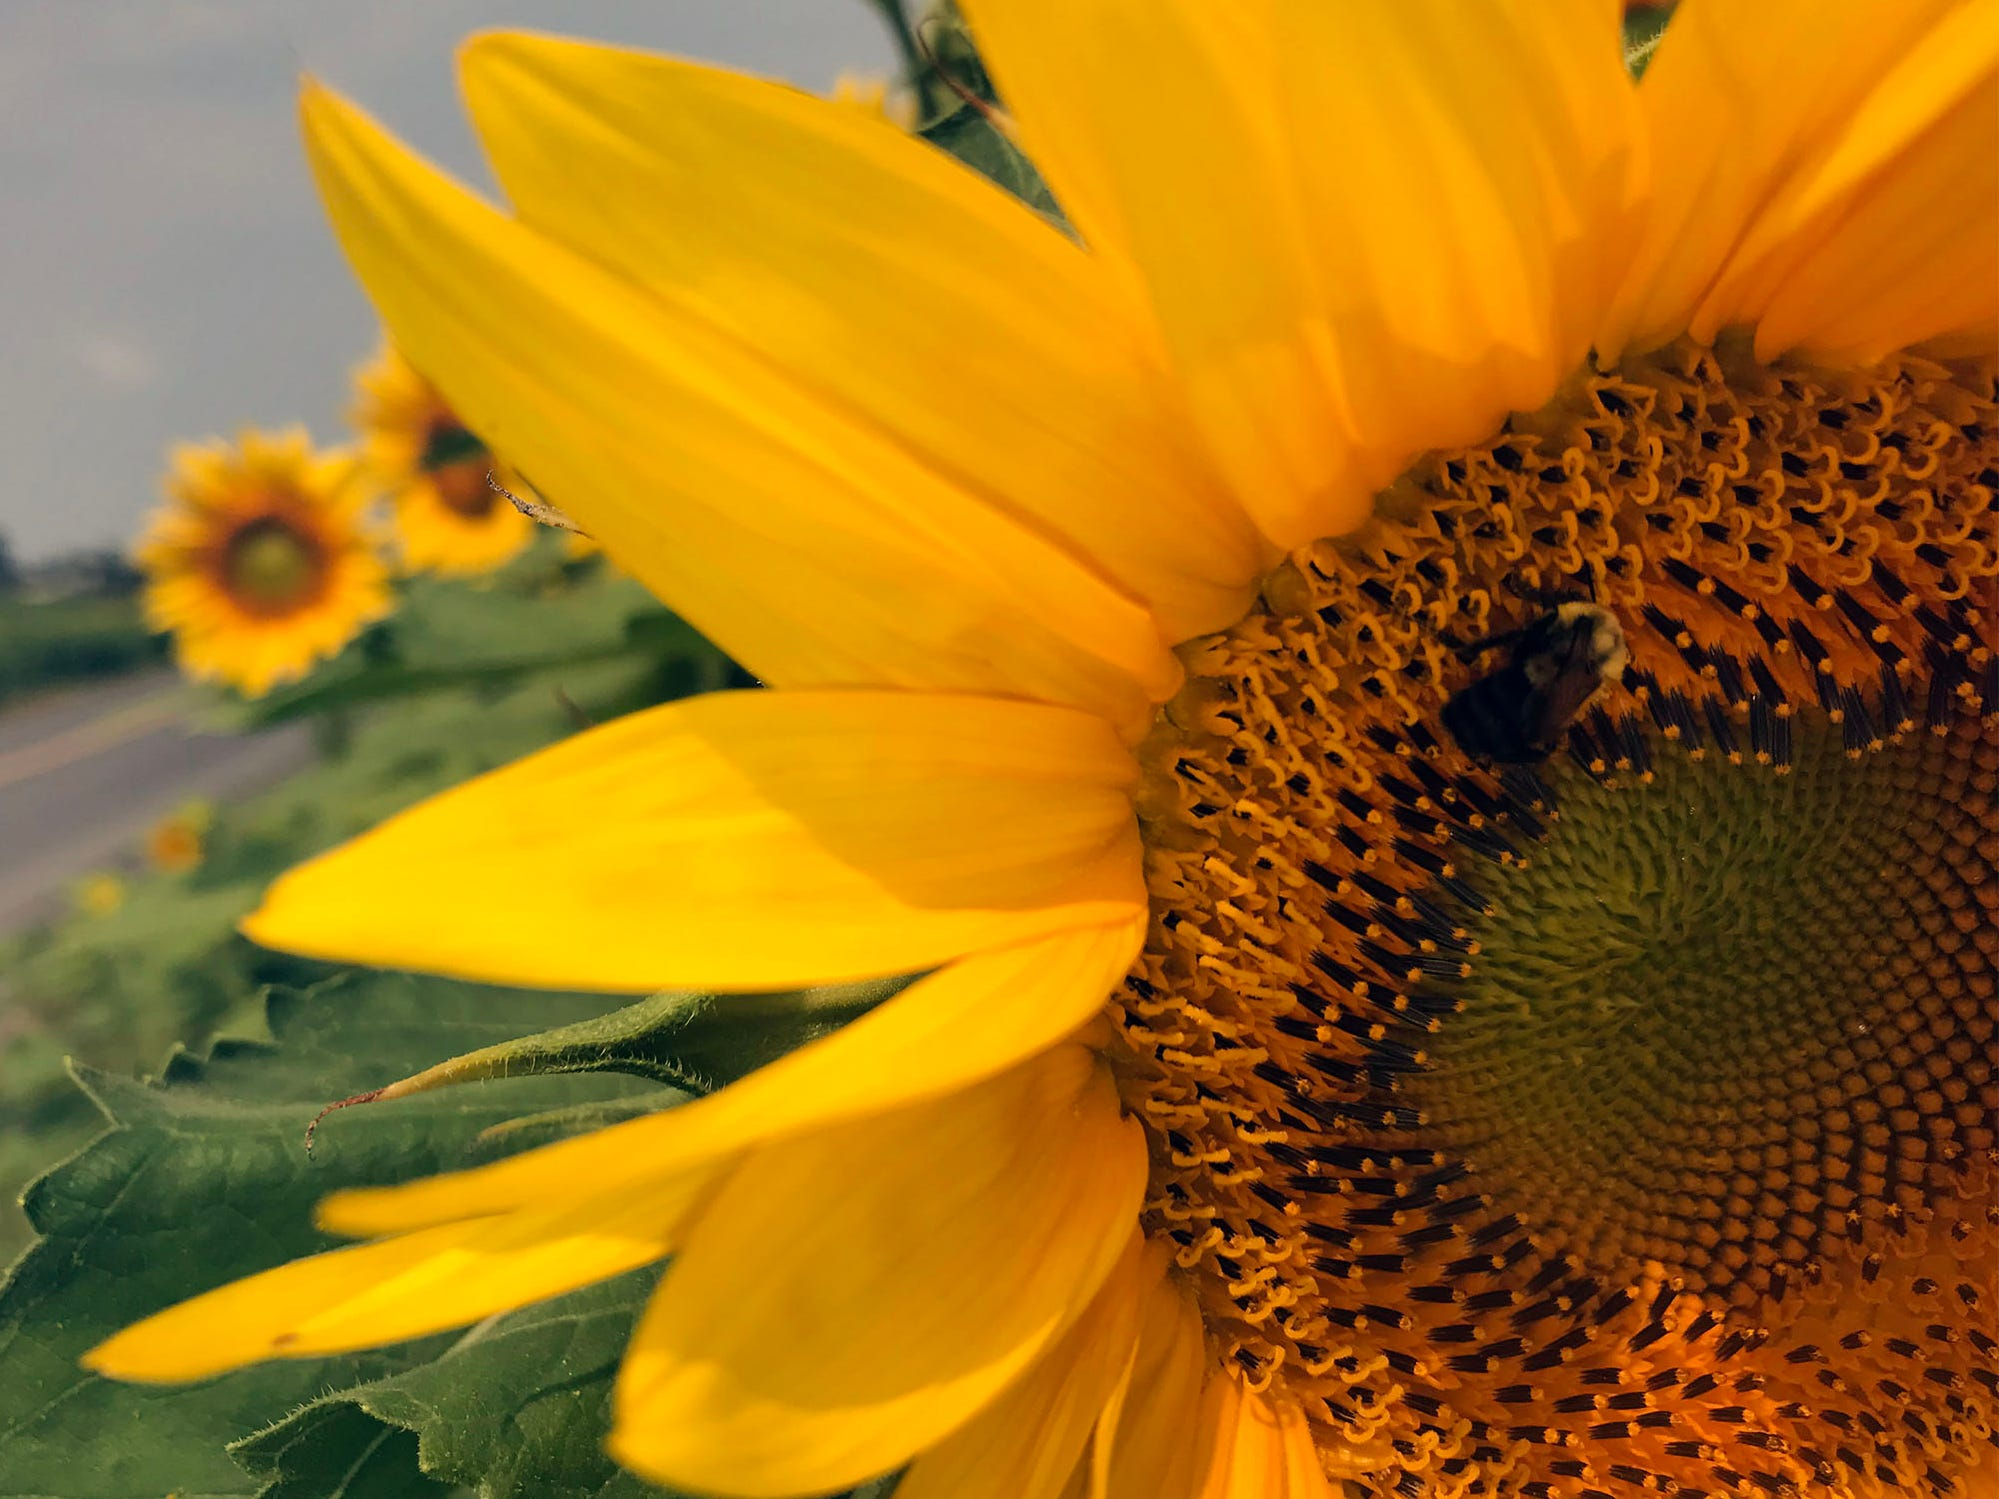 A sunflower field is in bloom south of Chambersburg in Antrim Township. For several years, Lesher Poultry Farm has planted the sunflowers for visitors to enjoy. This year's location is at Marion Road (near Talhelm Rd.), off Interstate 81, Exit 10.